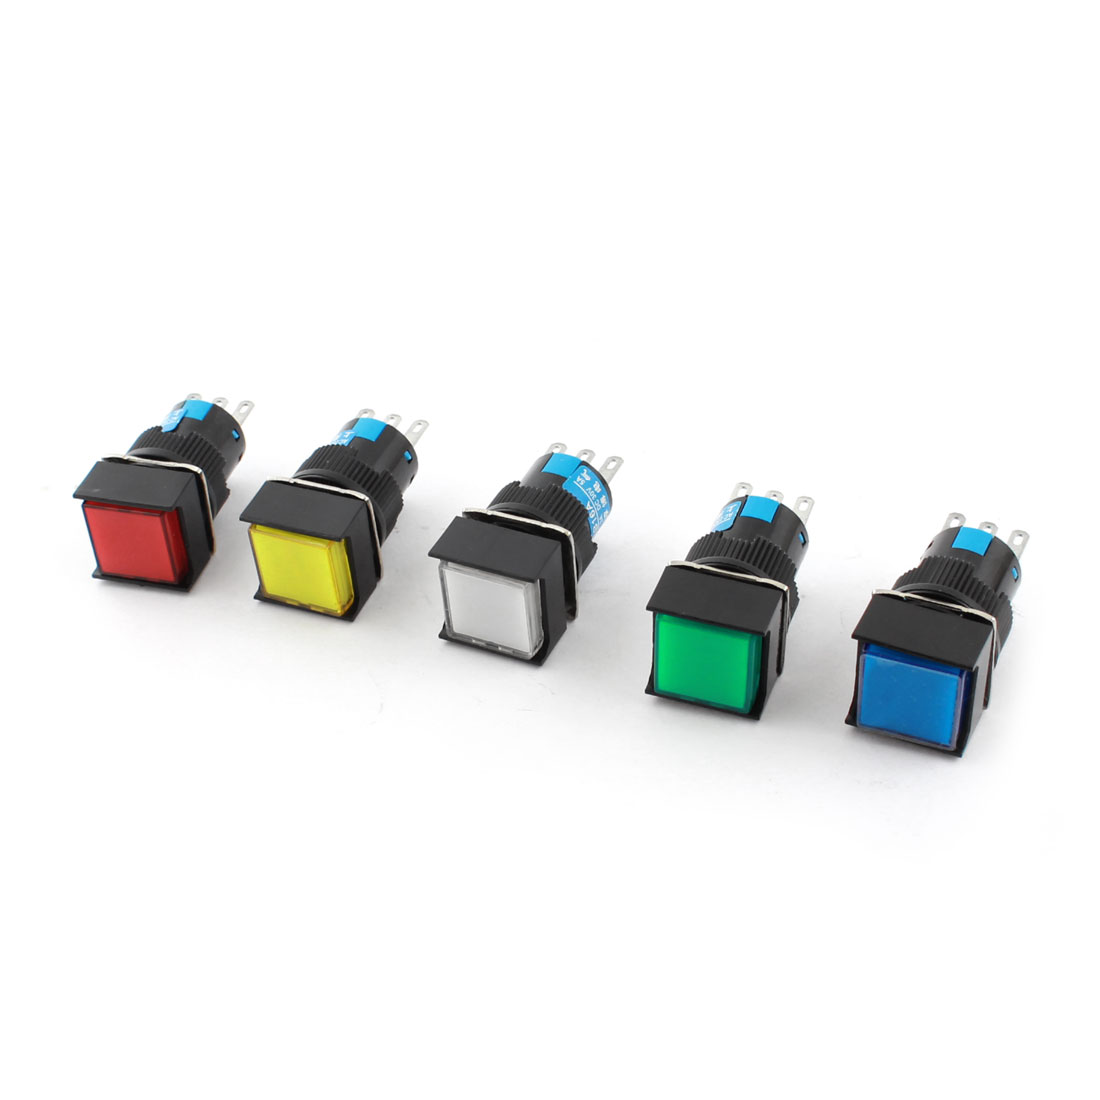 5 Pcs AC 250V 3A DC 30V 5A Assorted Color Button 16mm Thread Panel Mounted SPDT 3Pins Locking Square Pushbutton Switch